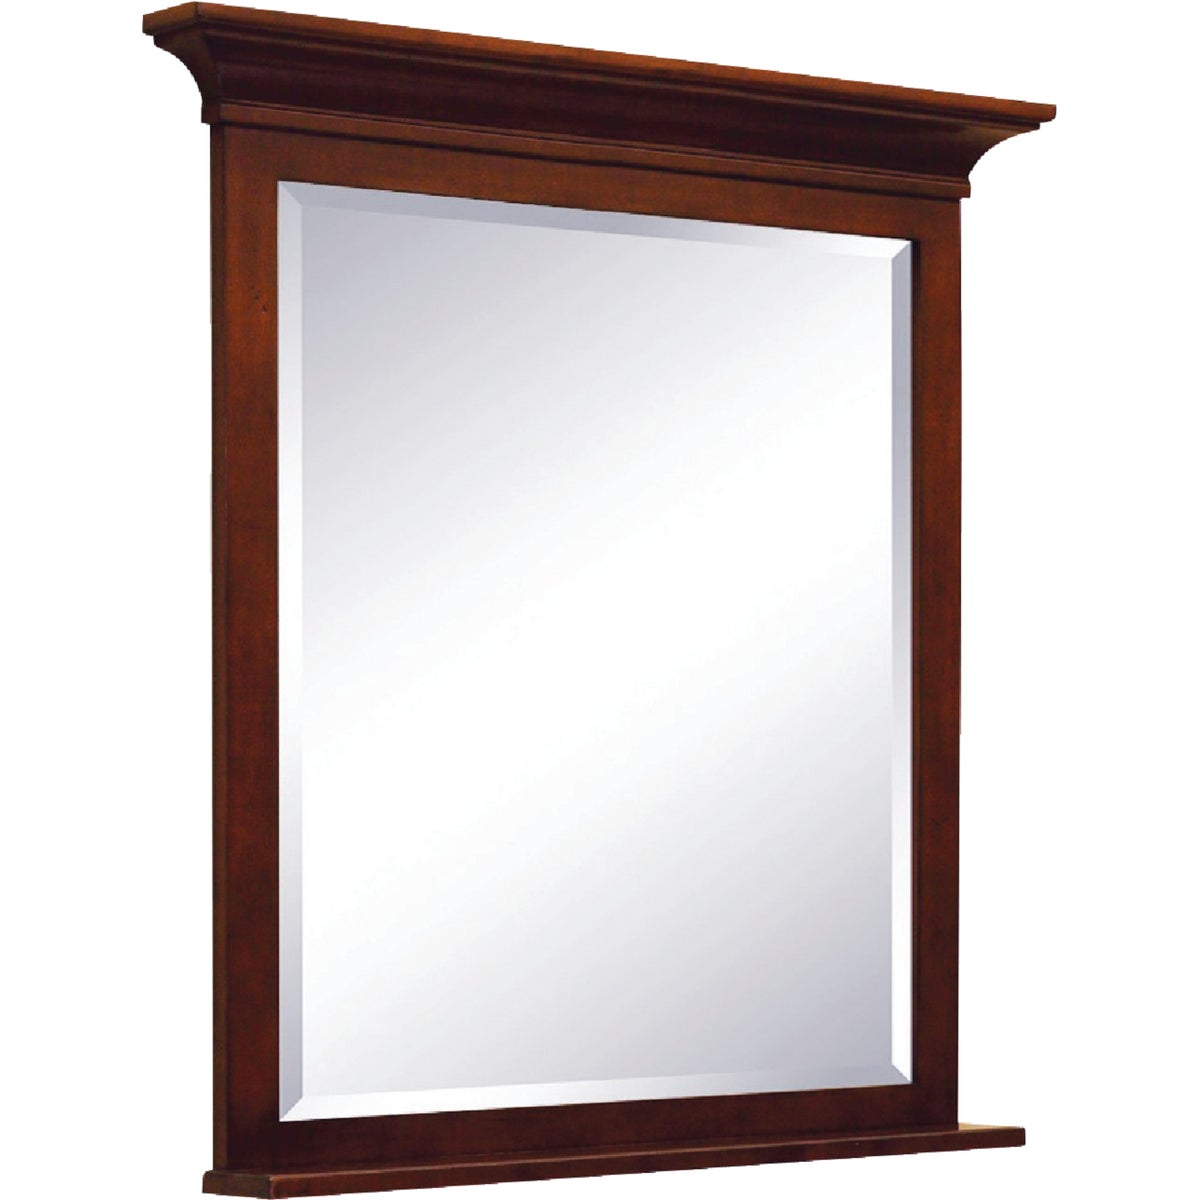 36X36 GRAND HAVEN MIRROR - GH3636MR by Sunnywood Products